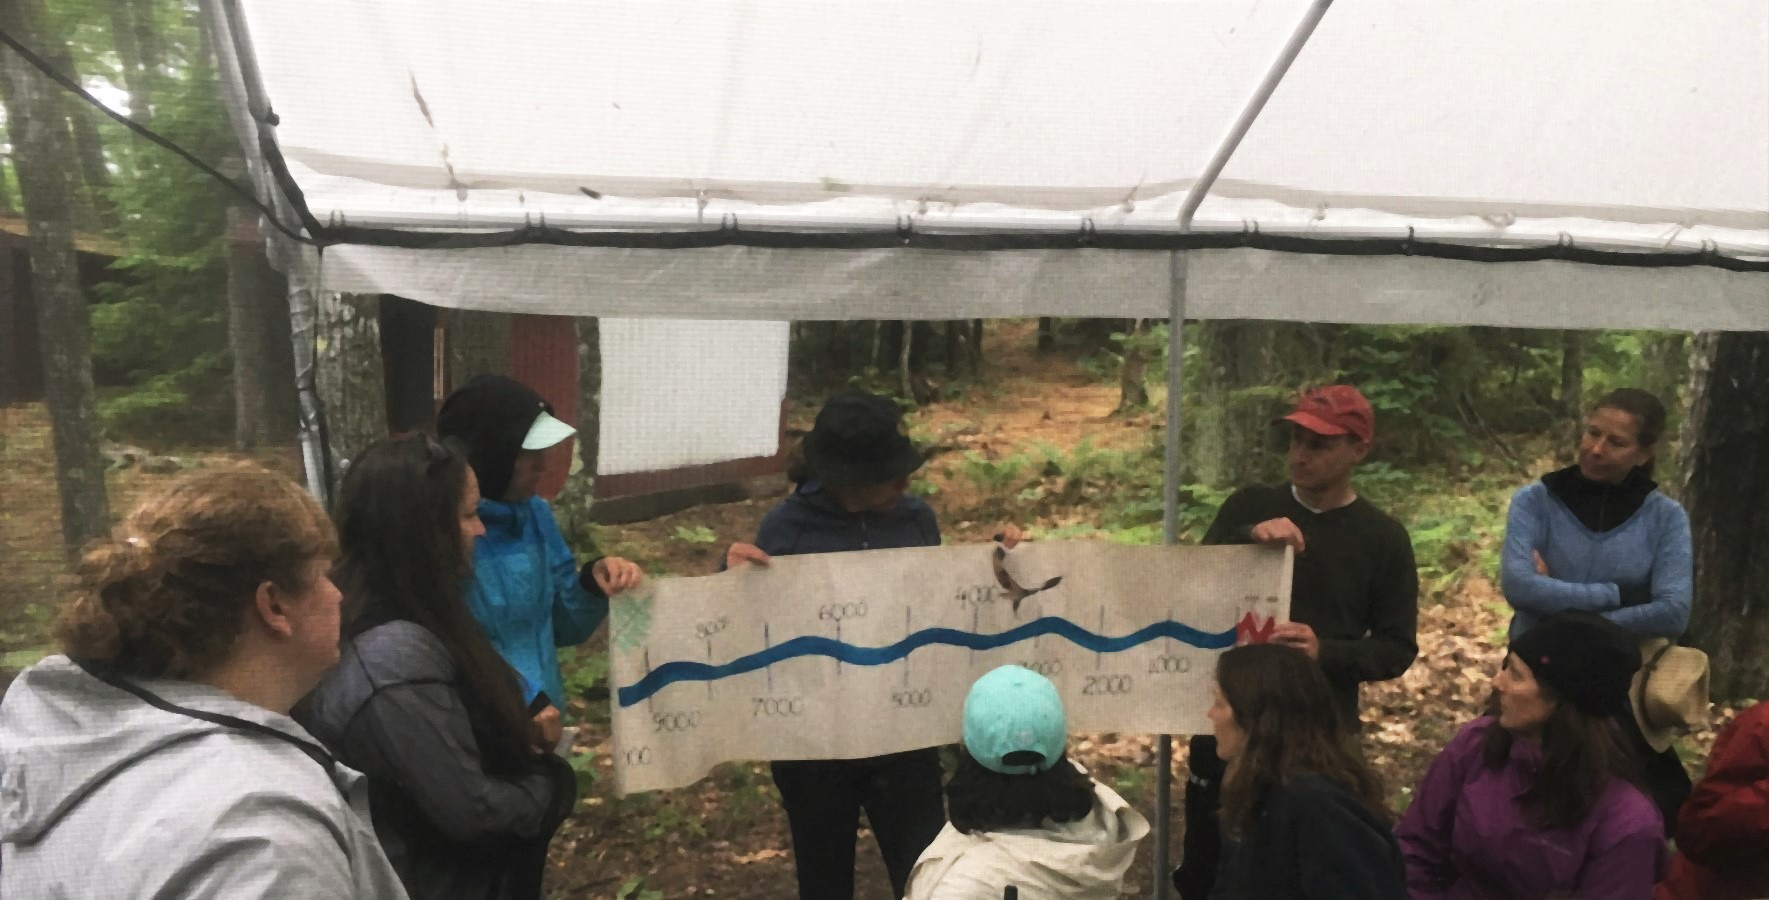 Group of people holding a timeline outside in a forest